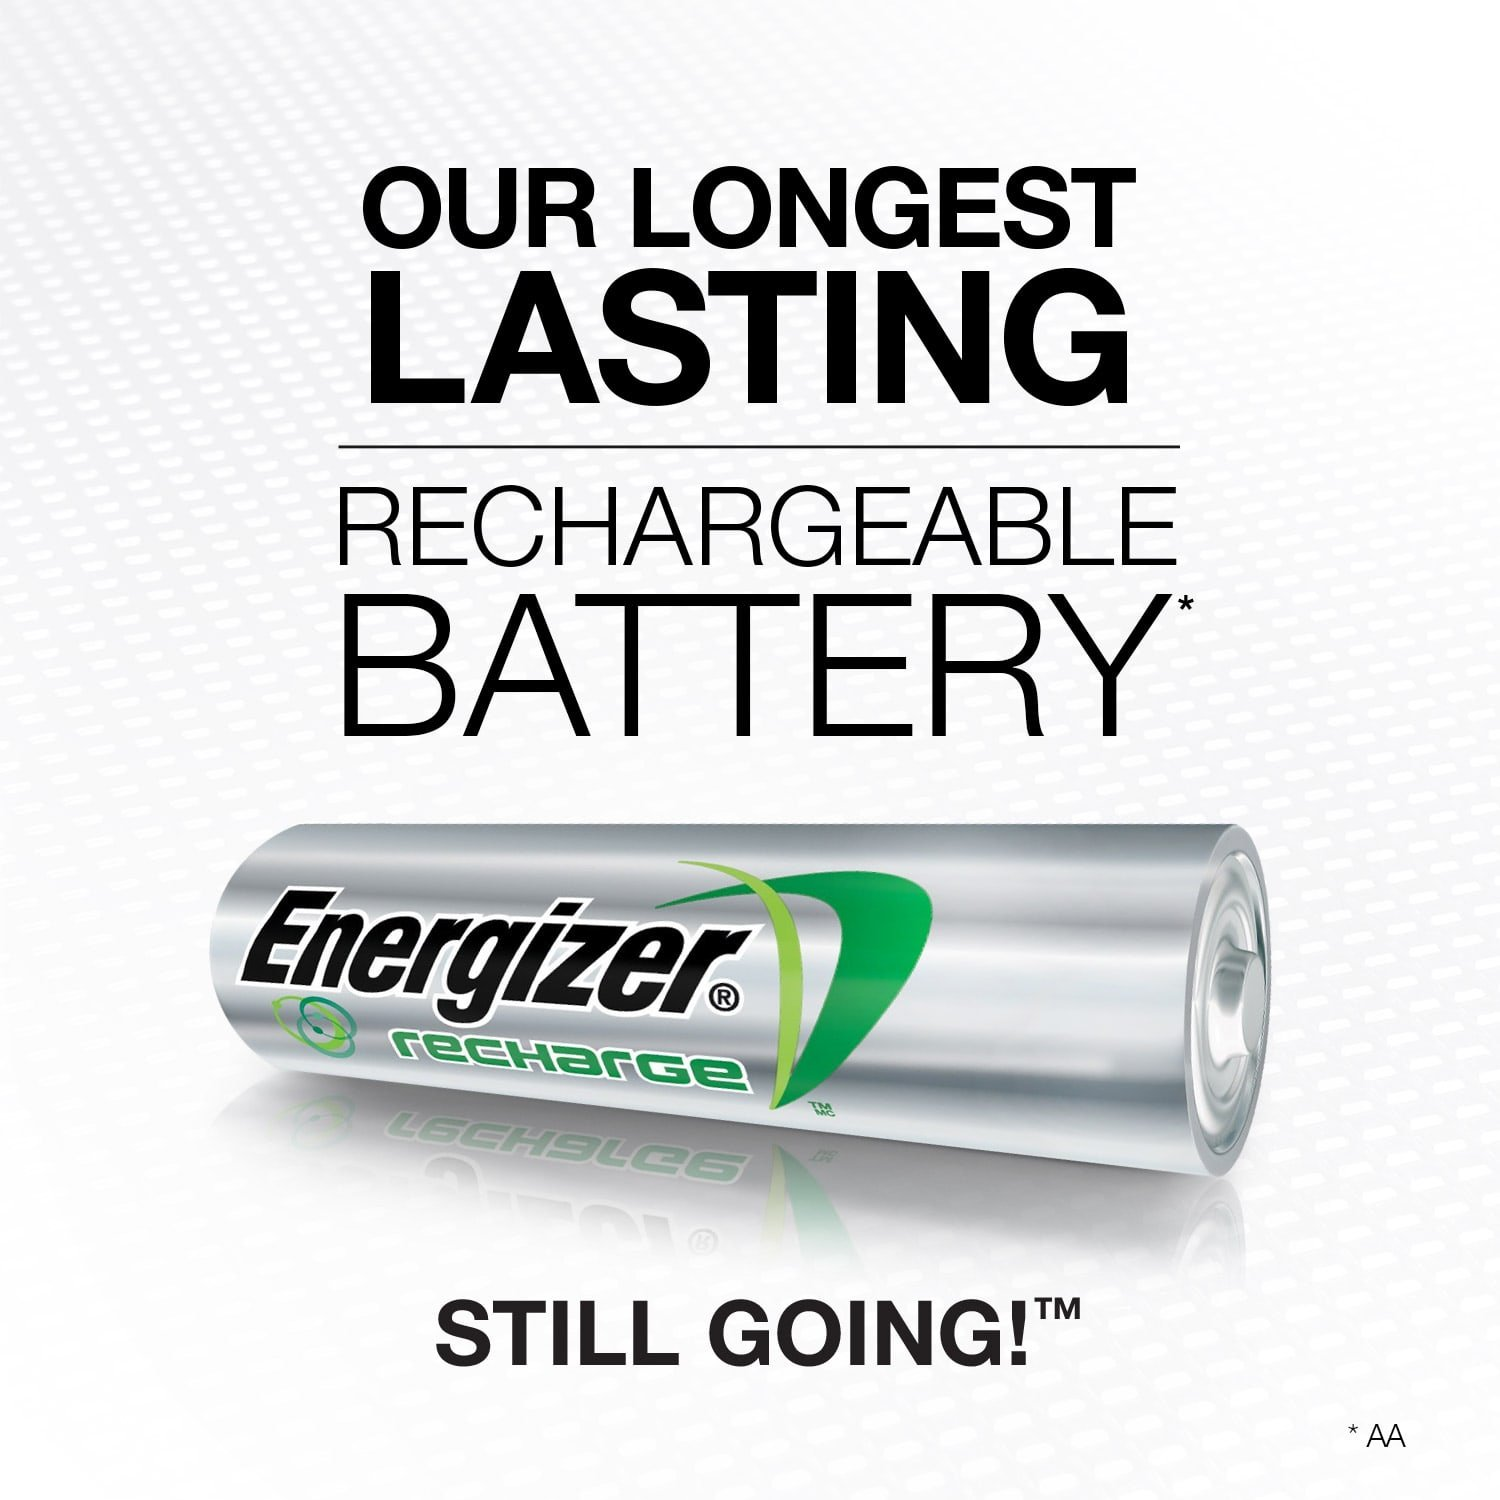 Energizer Recharge Power Plus Aa 2300 Mah Rechargeable Alkaline Battery Charger Circuit Batteries Pre Charged 4 Count Nh15bp4 Electronics